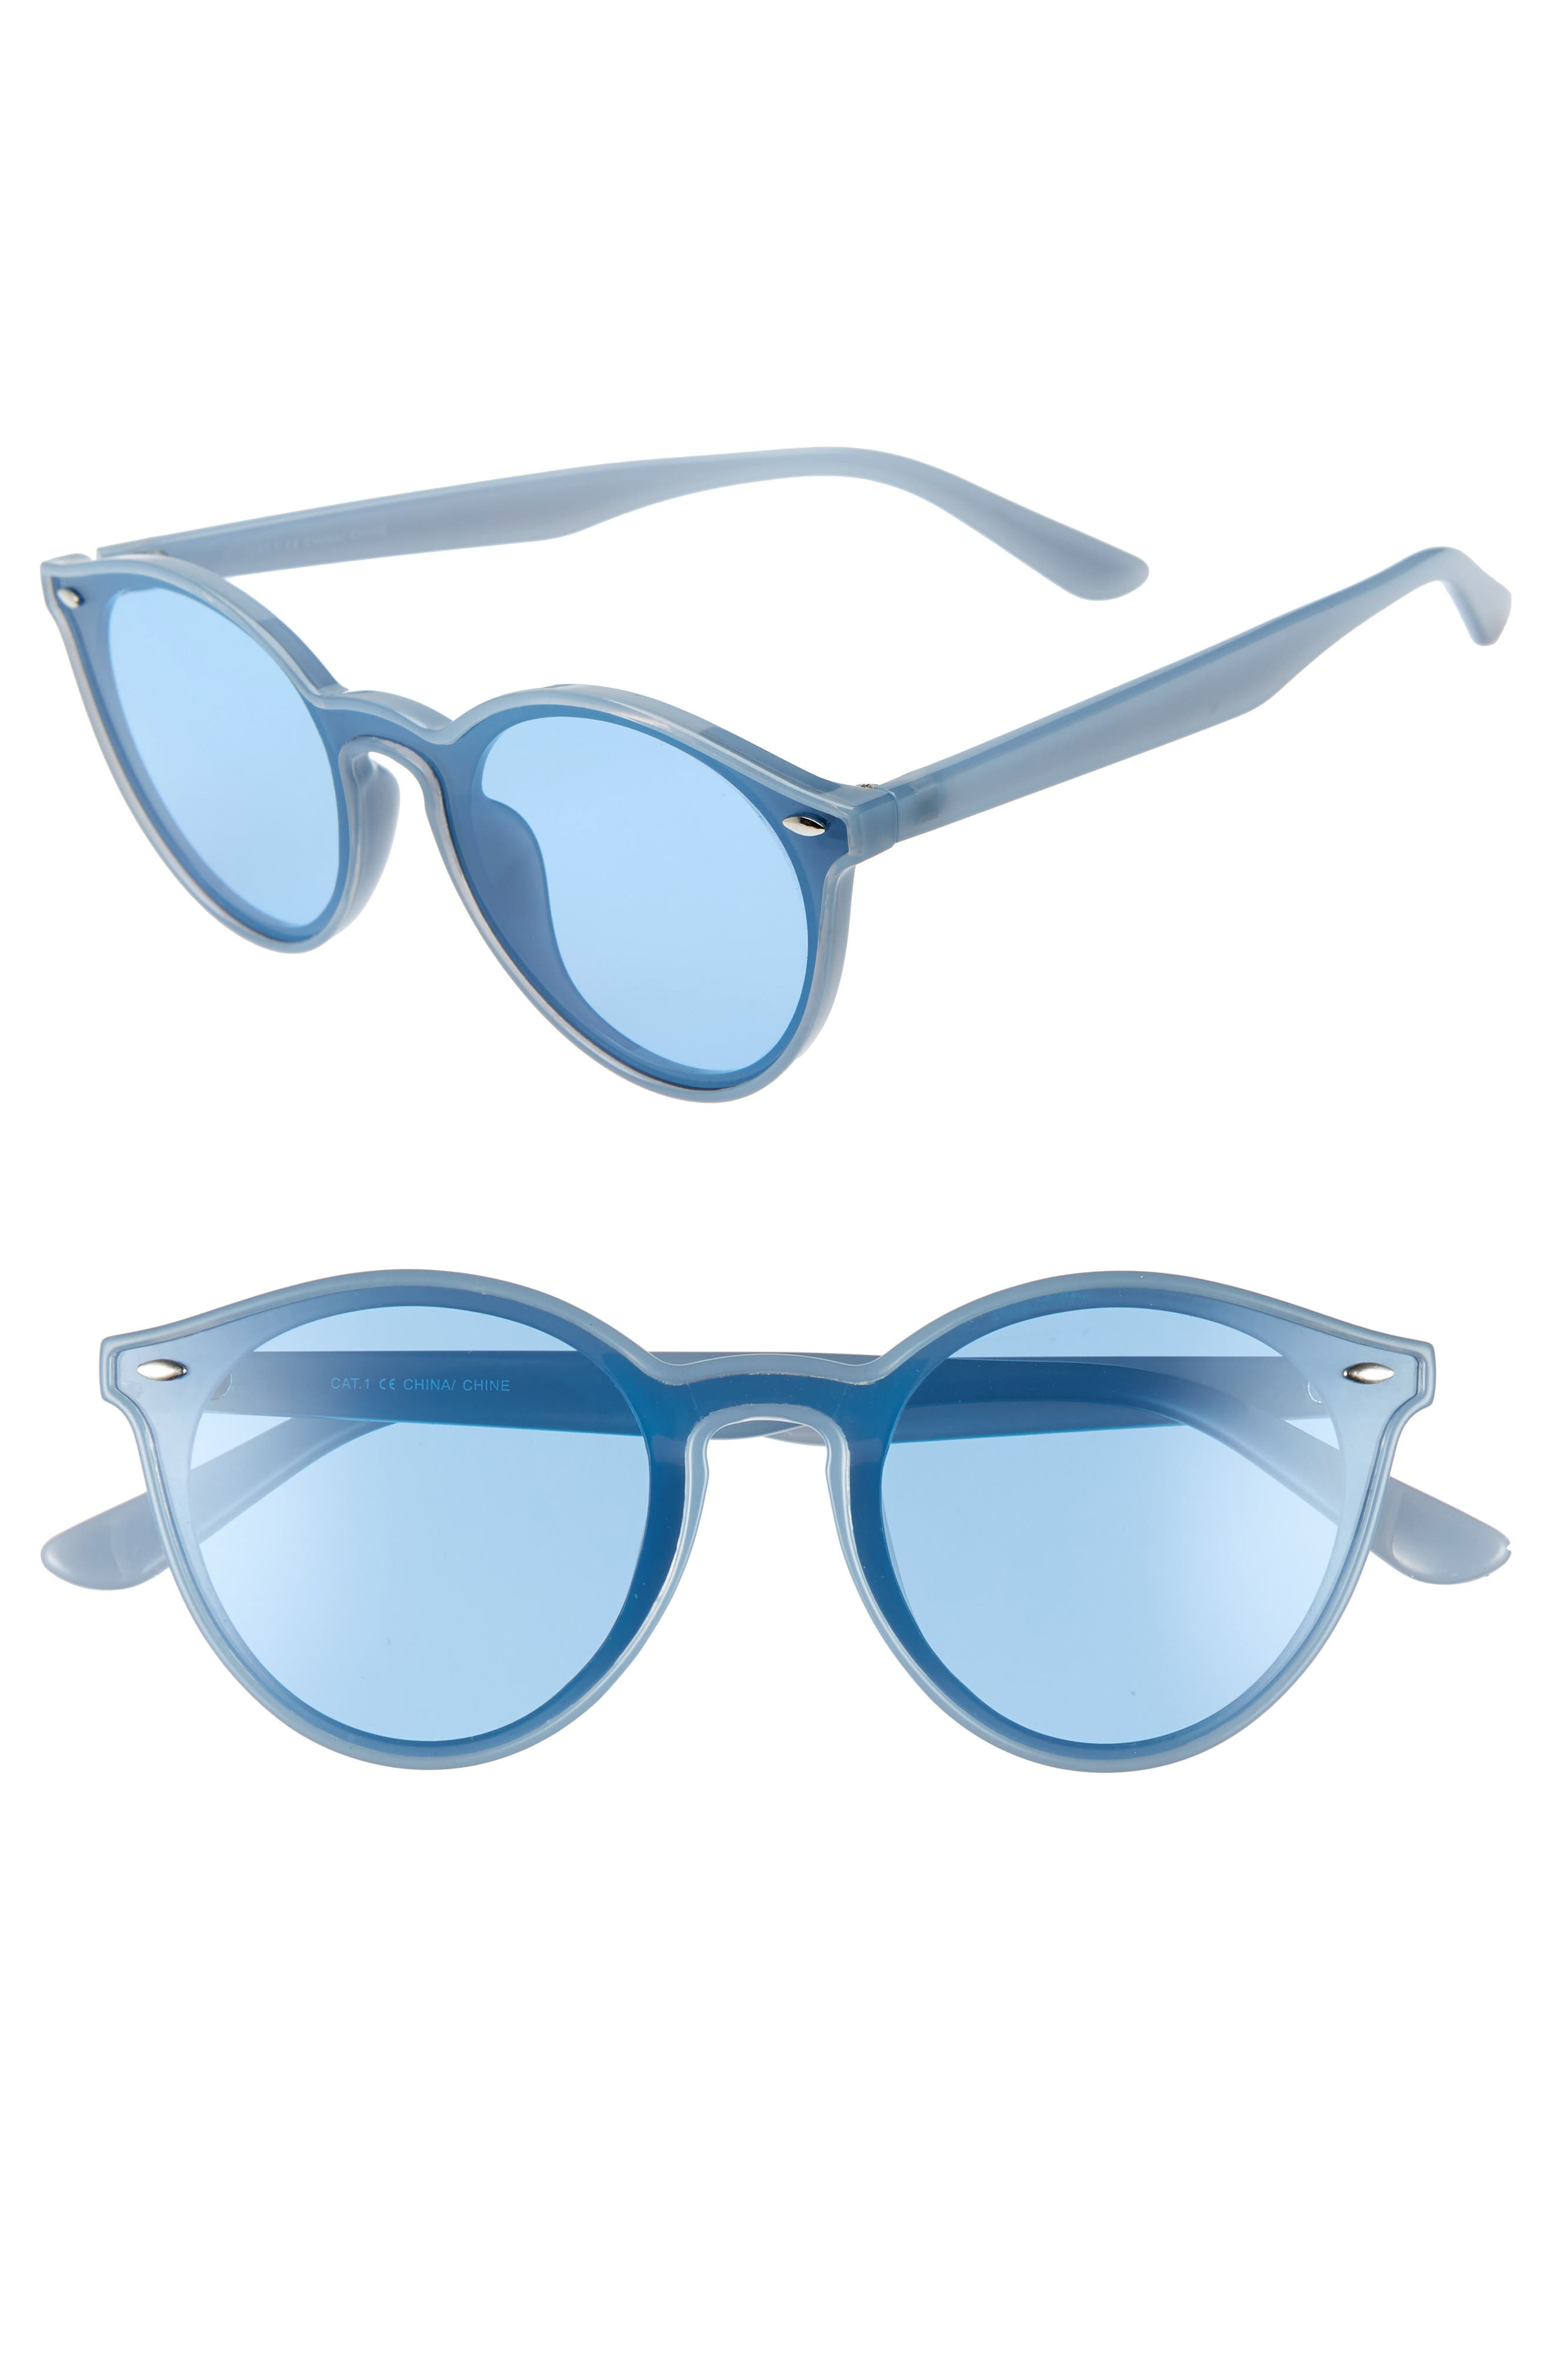 THE RAIL, Nico 53mm Round Sunglasses, Main thumbnail 1, color, BLUE/ BLUE